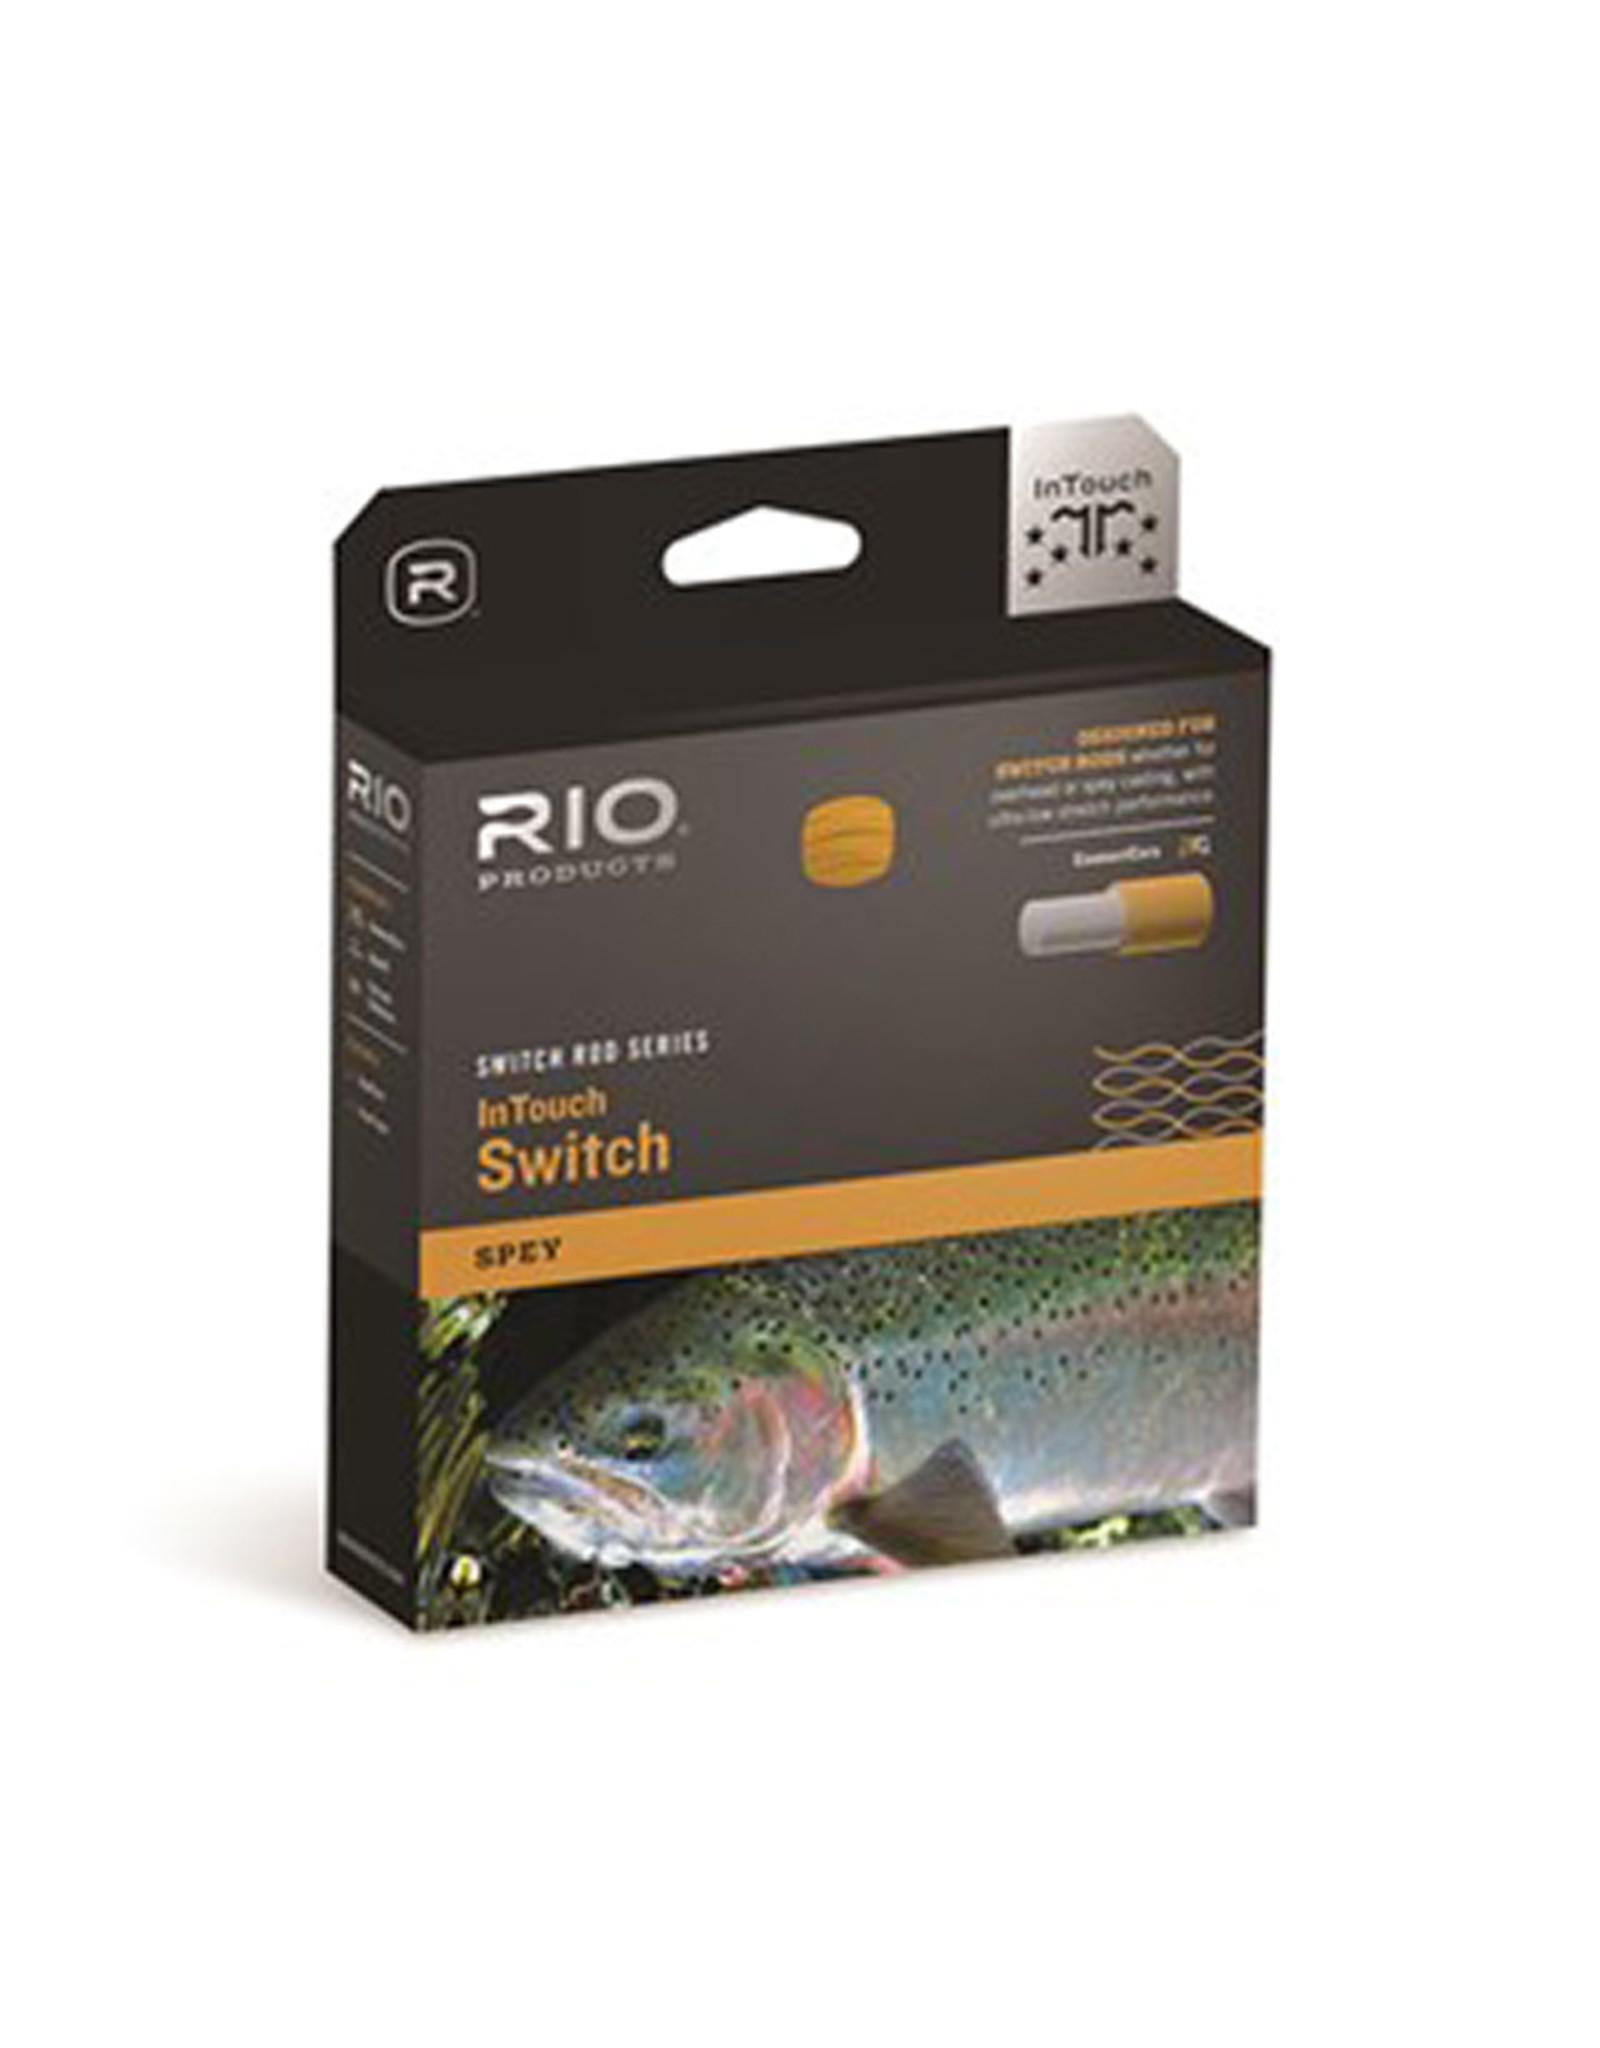 RIO Products InTouch Switch Chucker